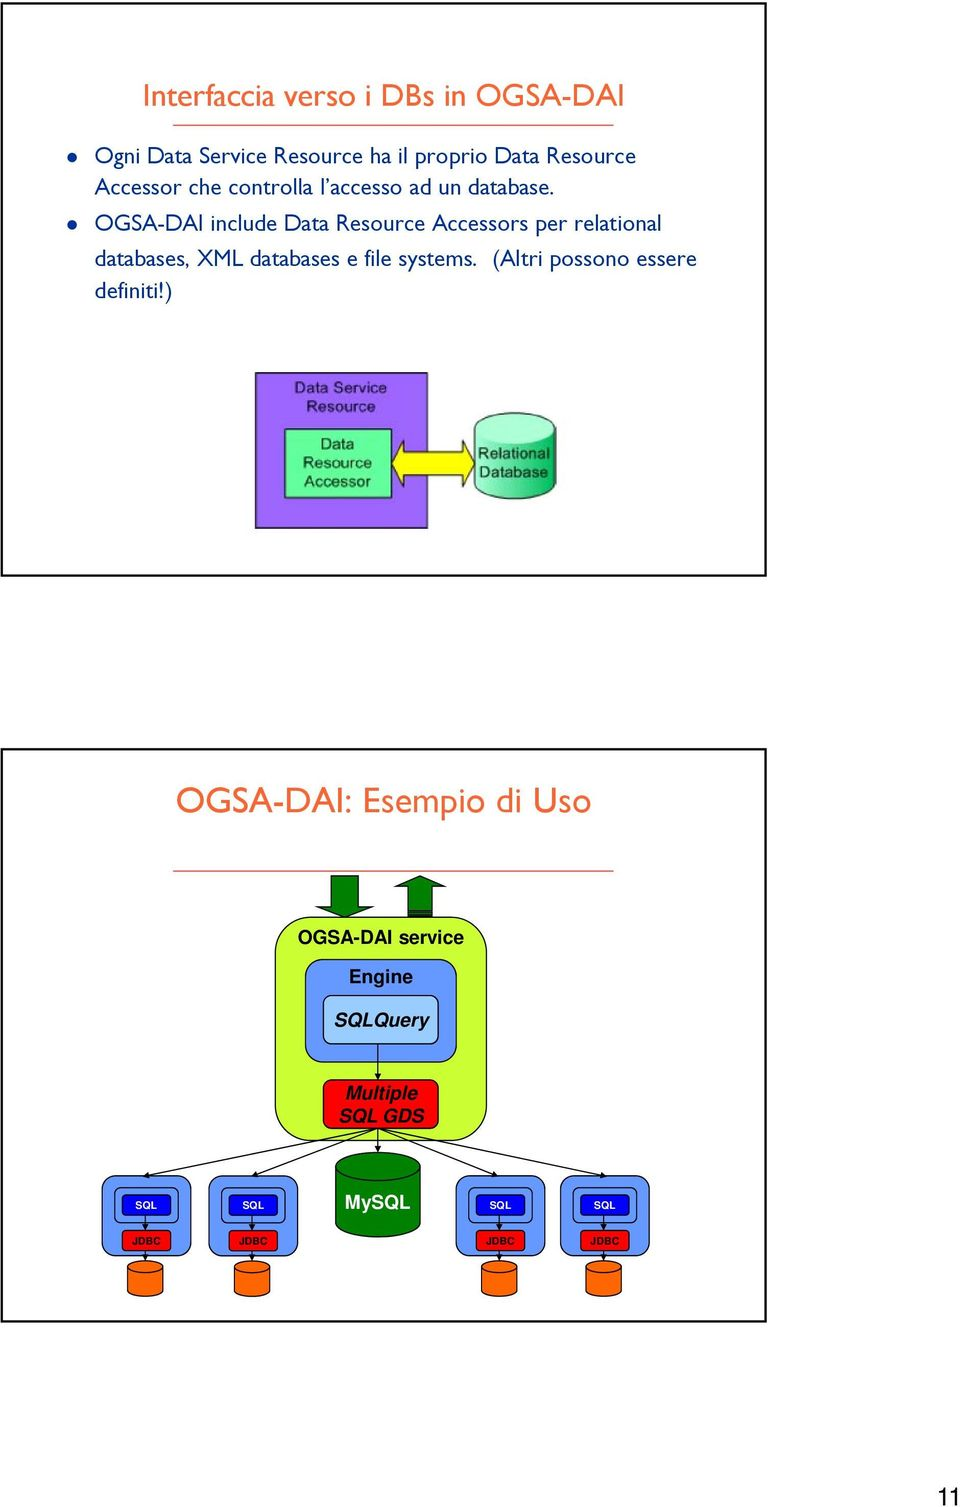 OGSA-DAI include Resource Accessors per relational databases, XML databases e file systems.